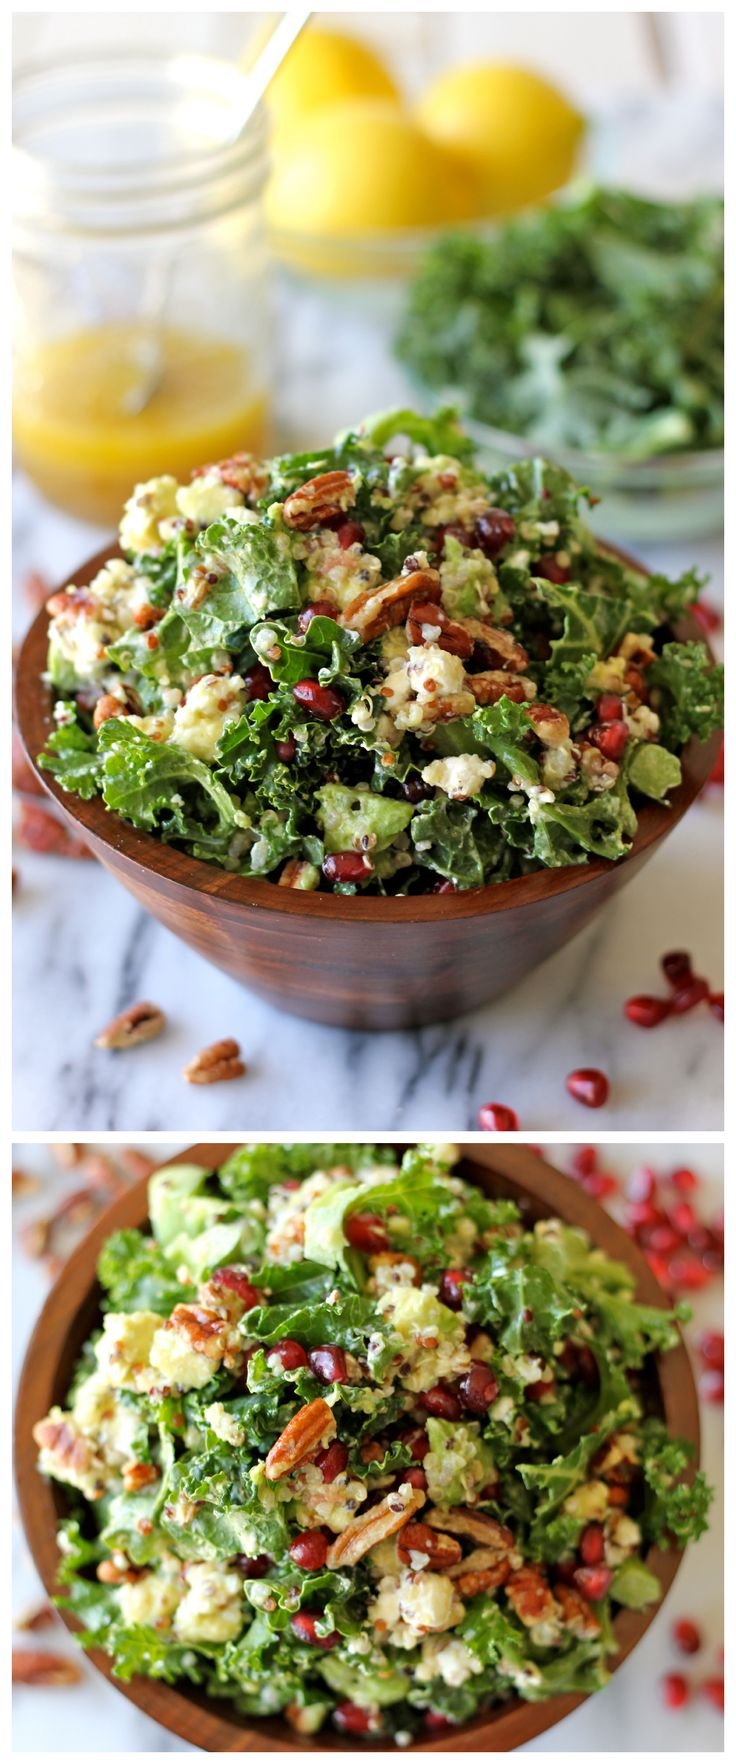 Kale Salad with Meyer Lemon Vinaigrette - Perfect as a light lunch or even a meatless Monday dinner option! Healthy salad recipes and ideas